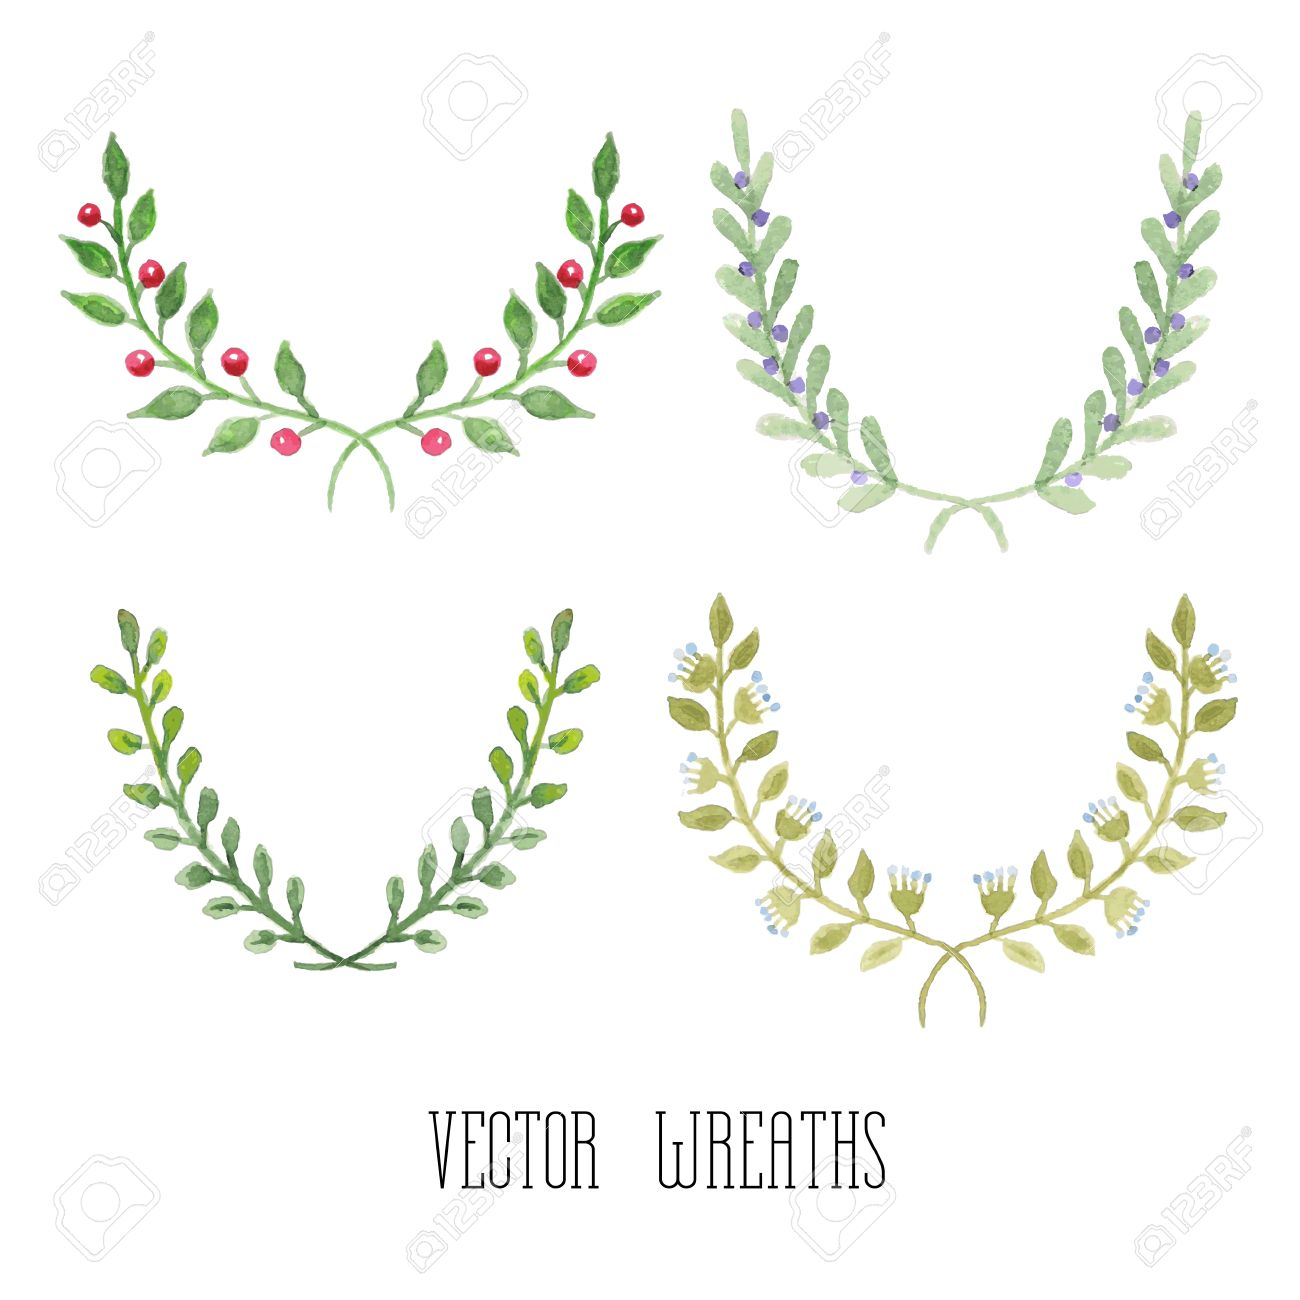 Of Wreaths Watercolor Floral Set Of Wreaths And Laurels Royalty Free Cliparts